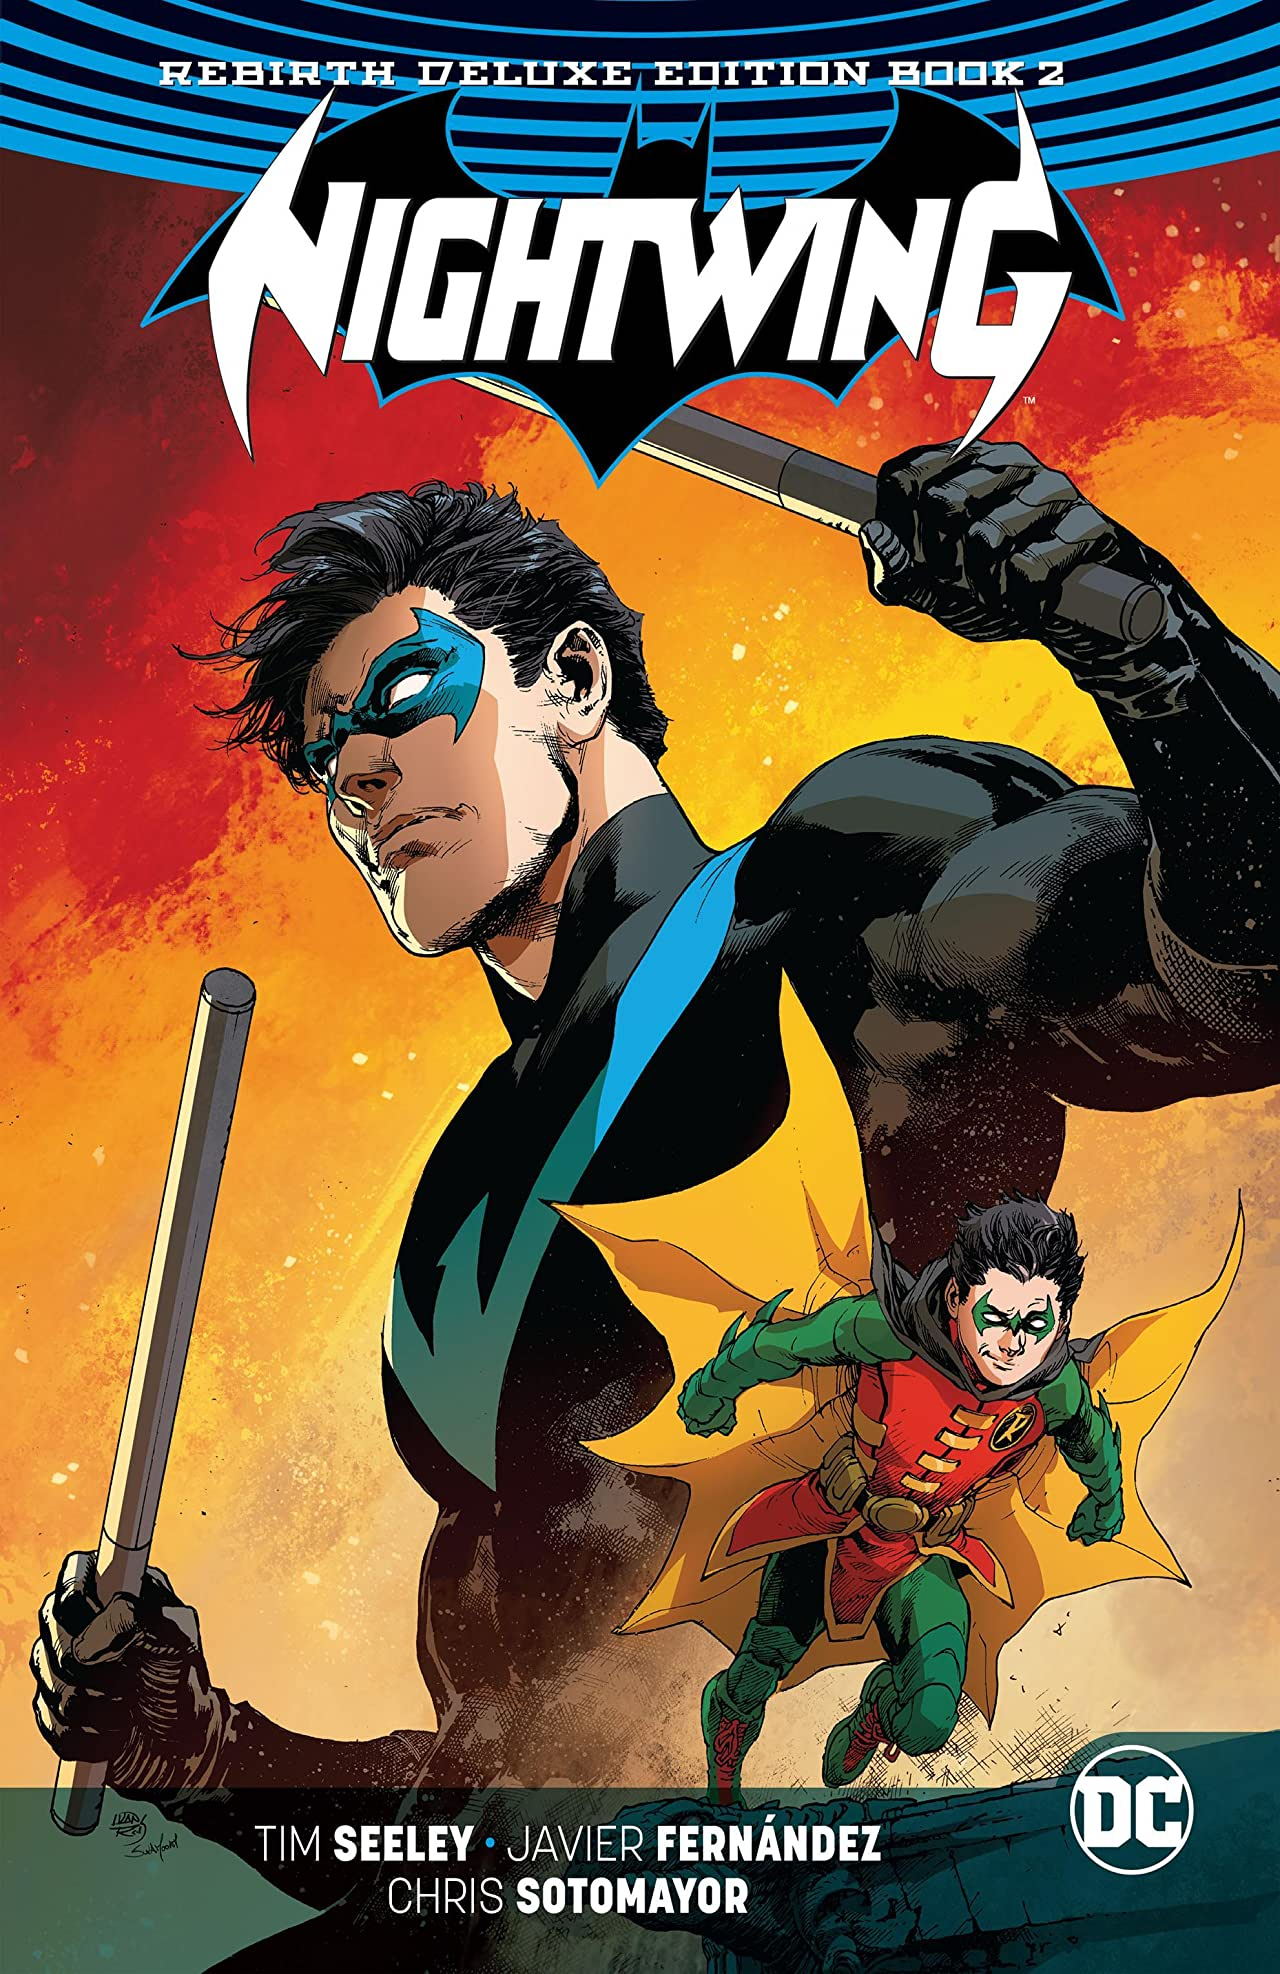 Nightwing: The Rebirth Deluxe Edition - Book 2